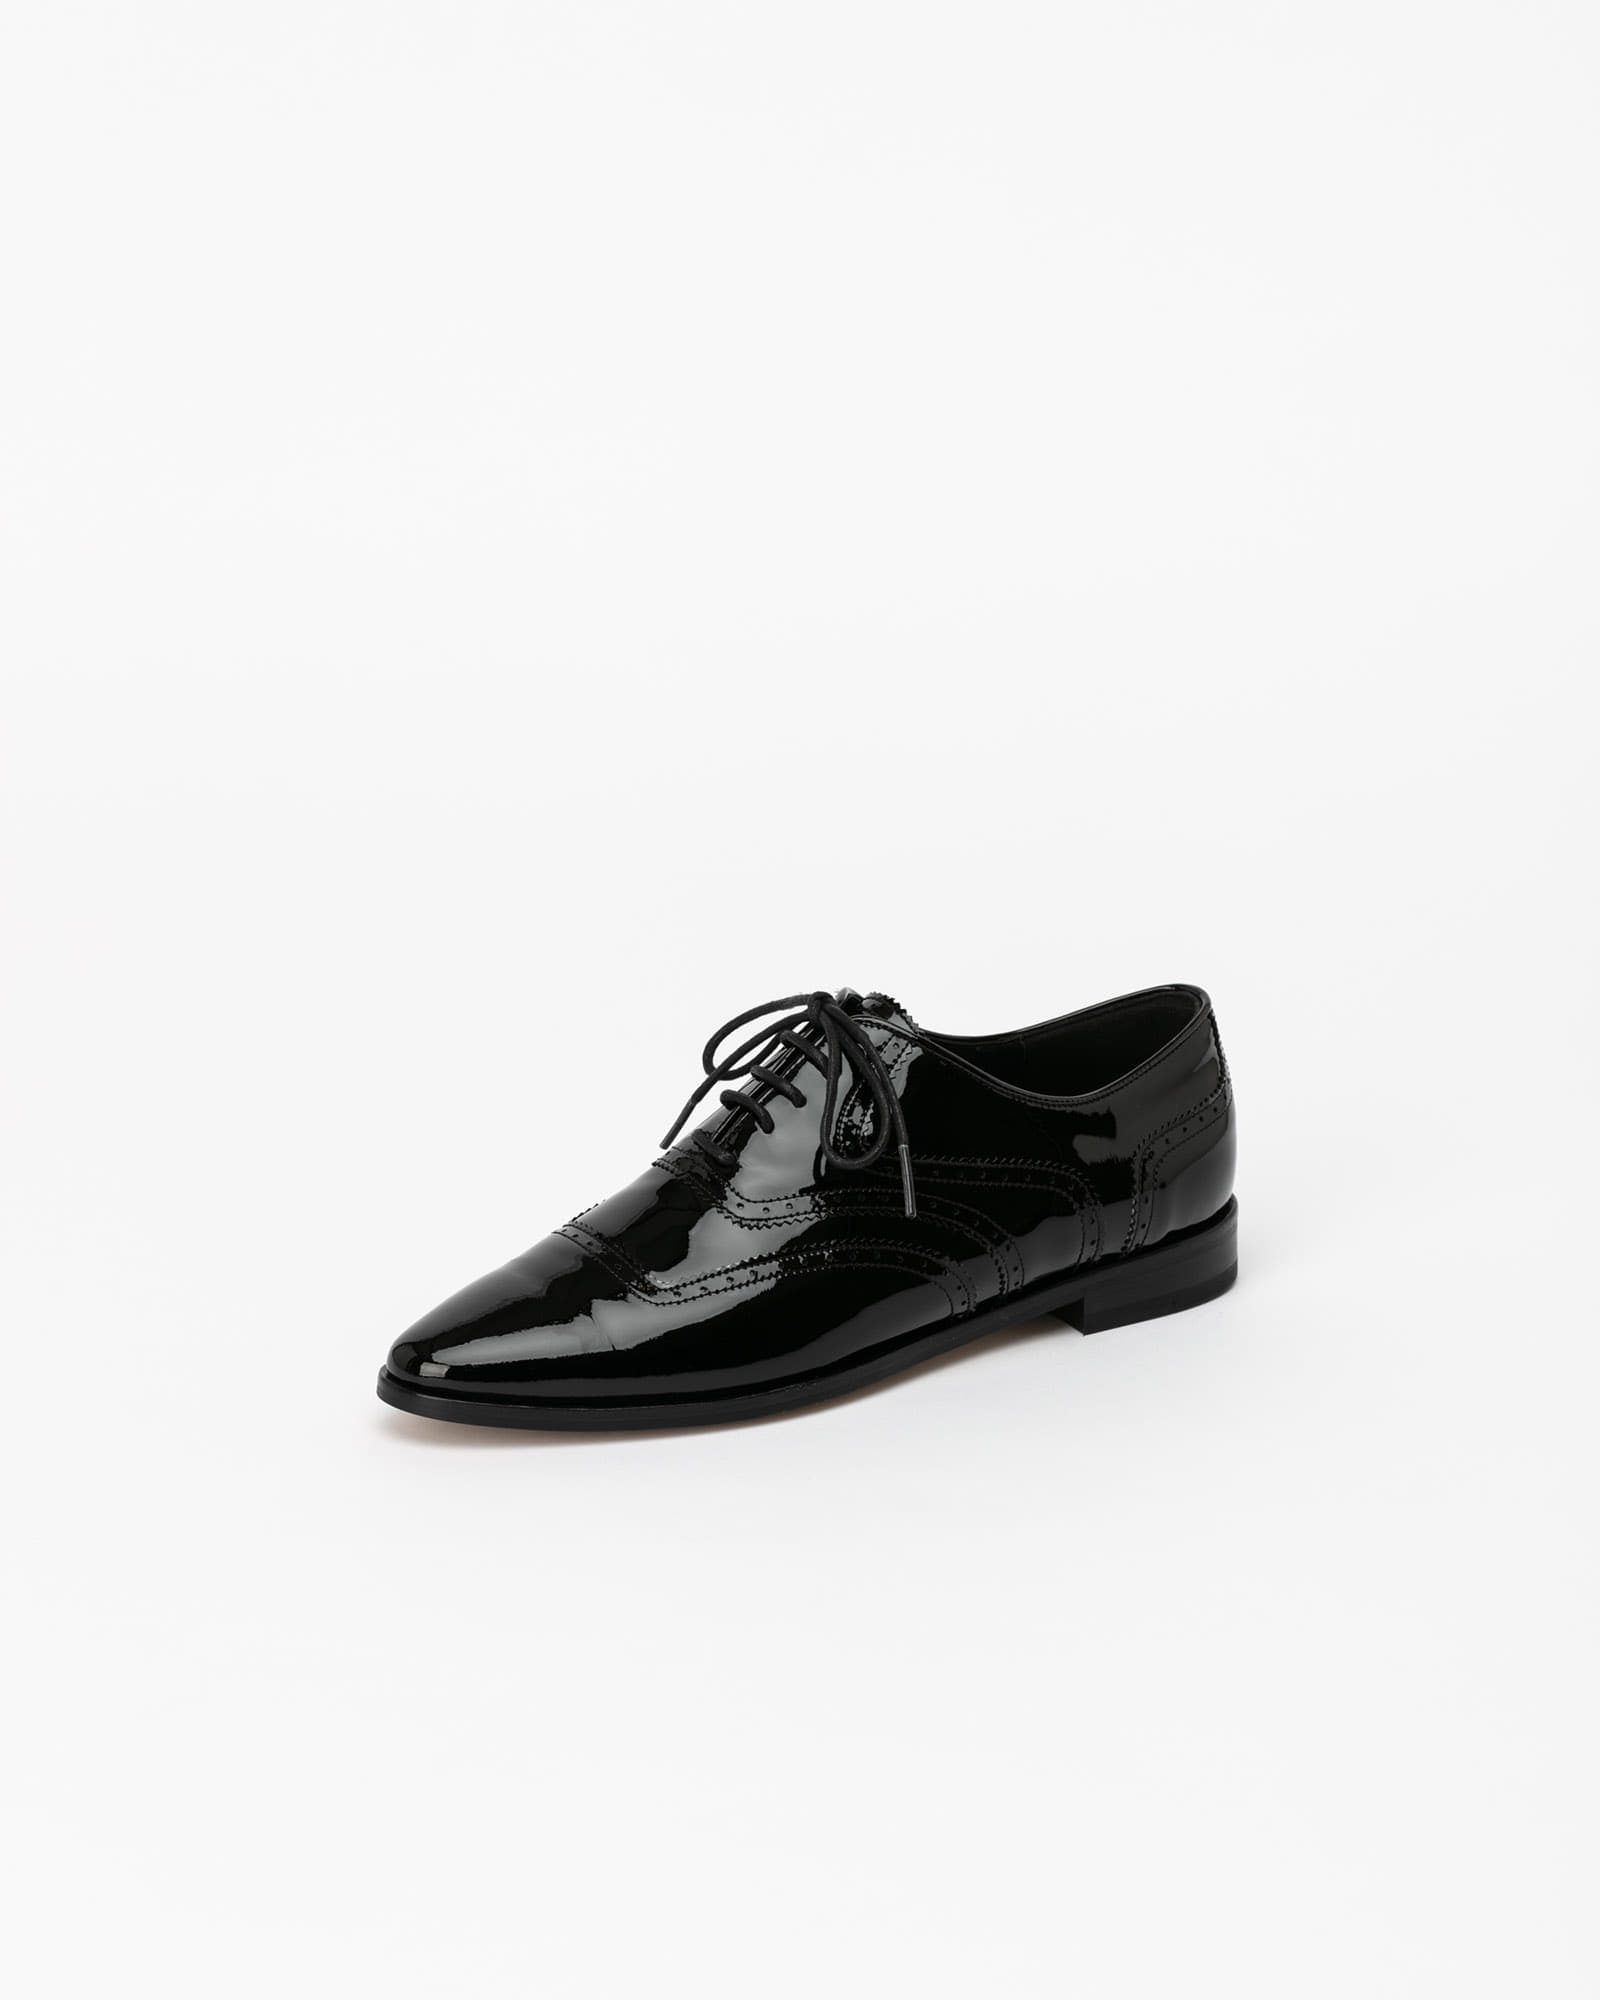 Celsius Oxford Shoes in Black Patent